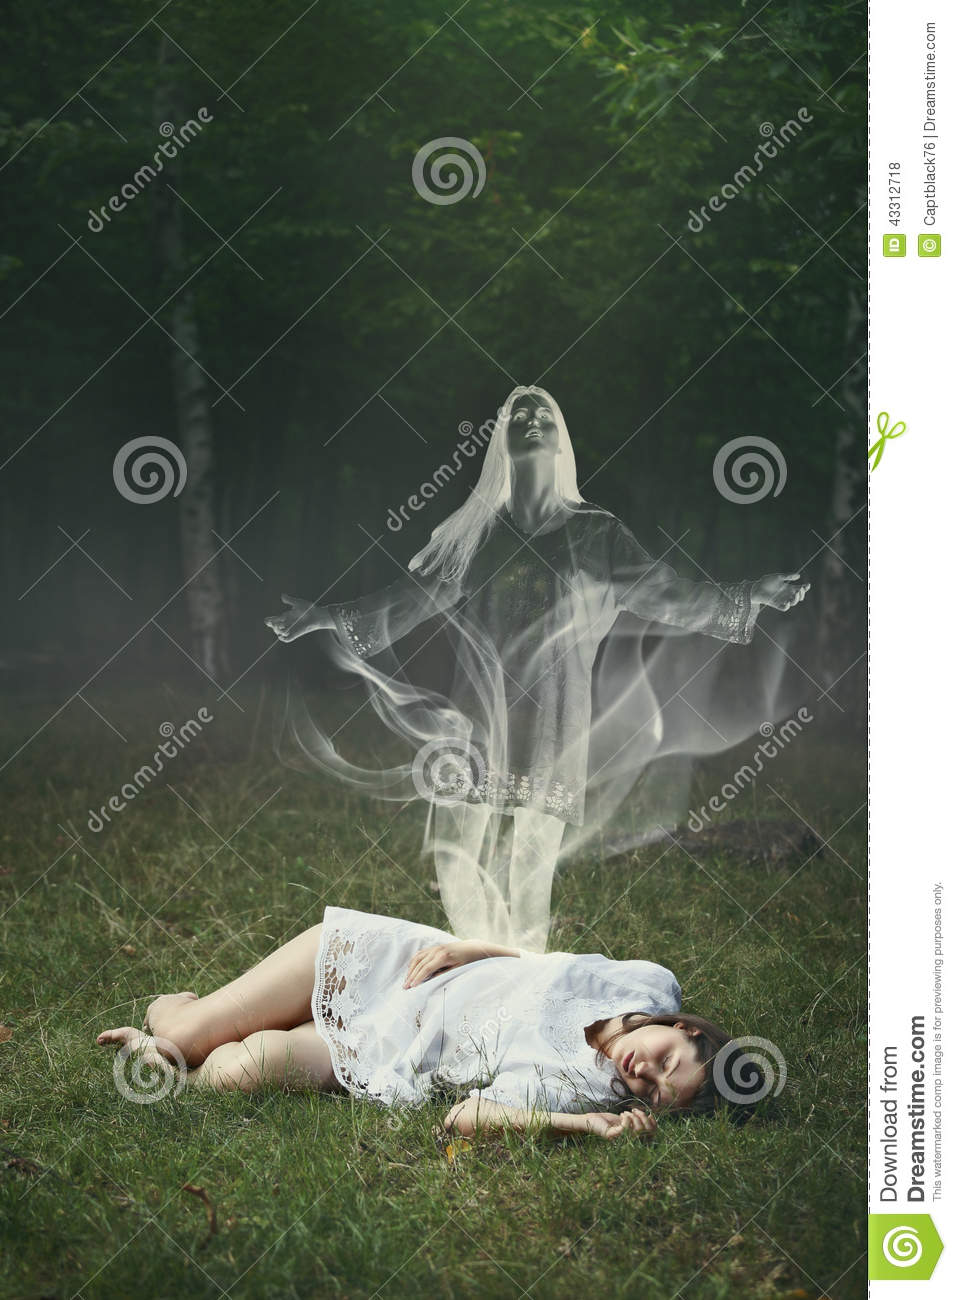 Soul of a sleeping woman in the forest